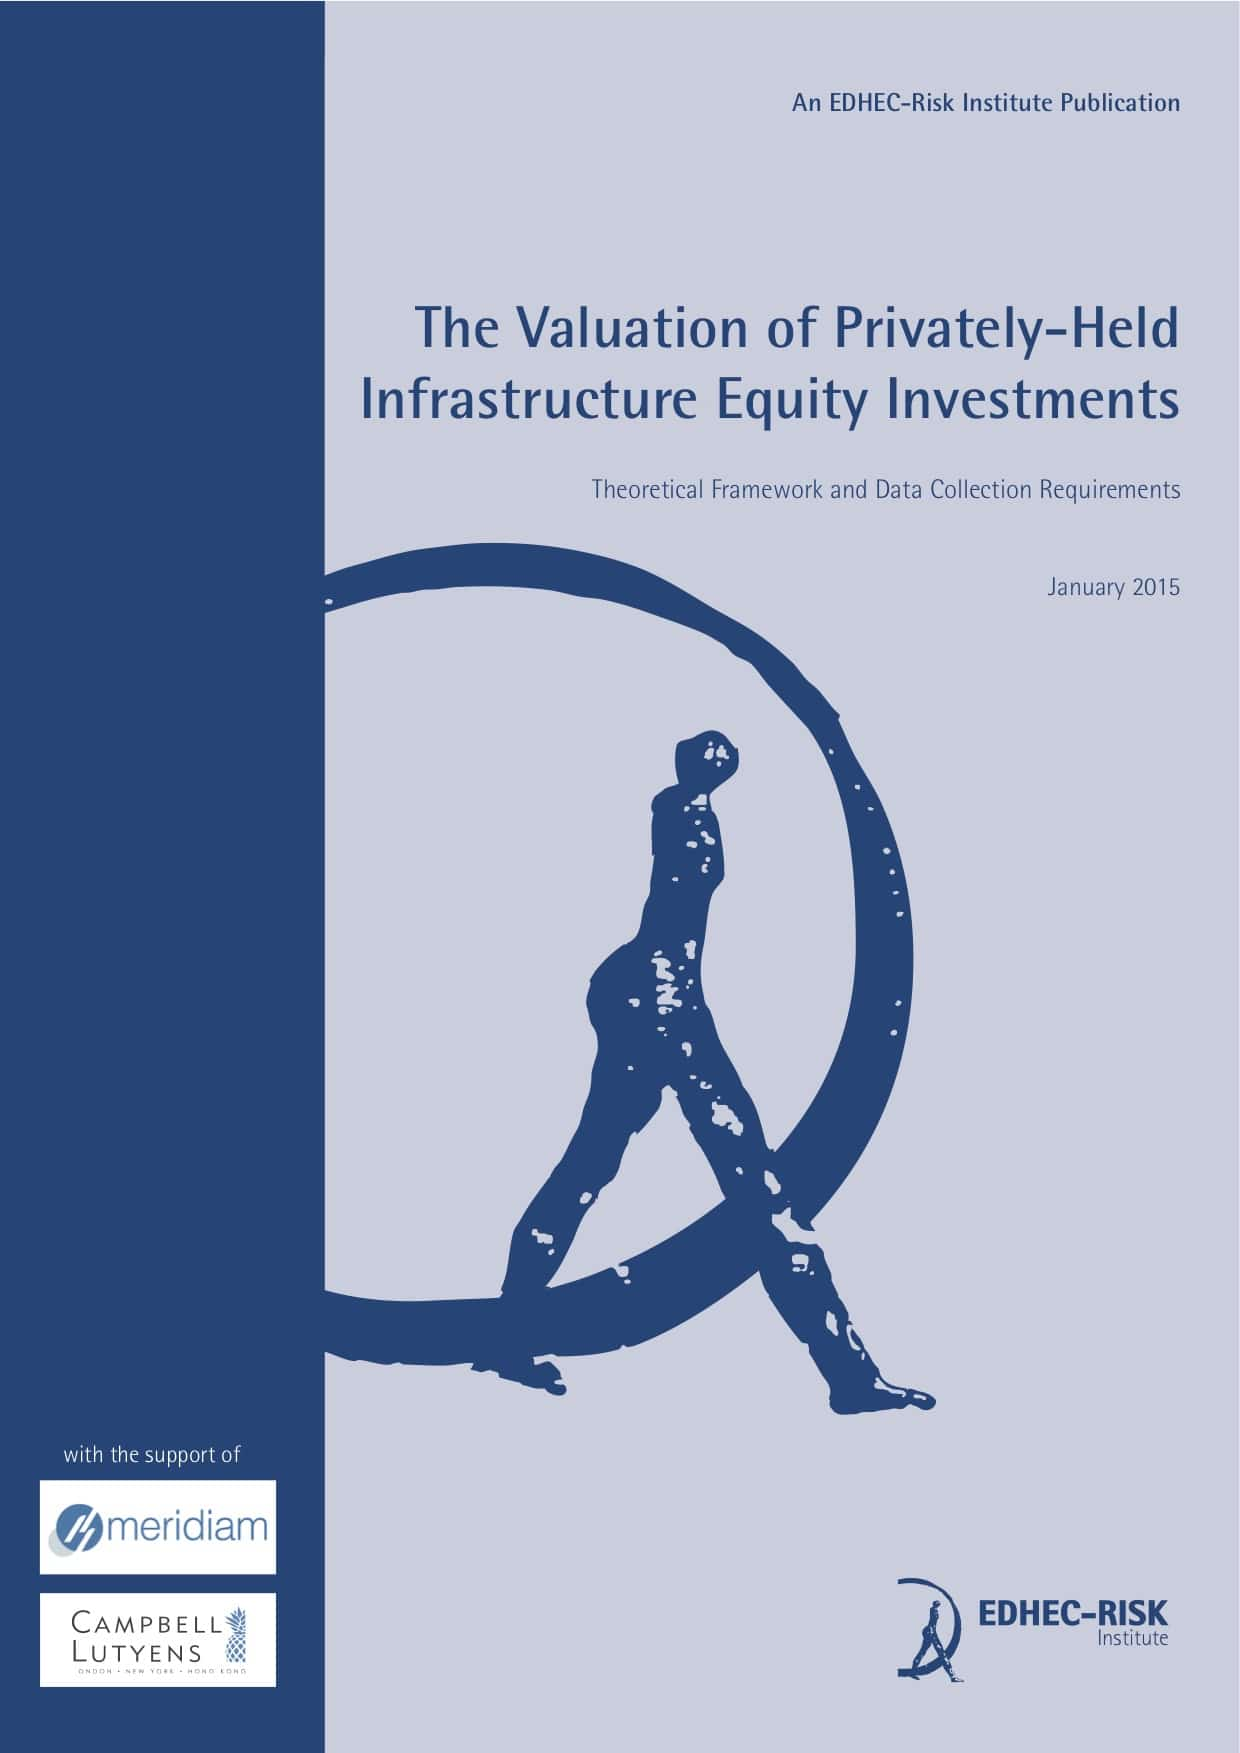 The valuation of privately-held infrastructure equity investments